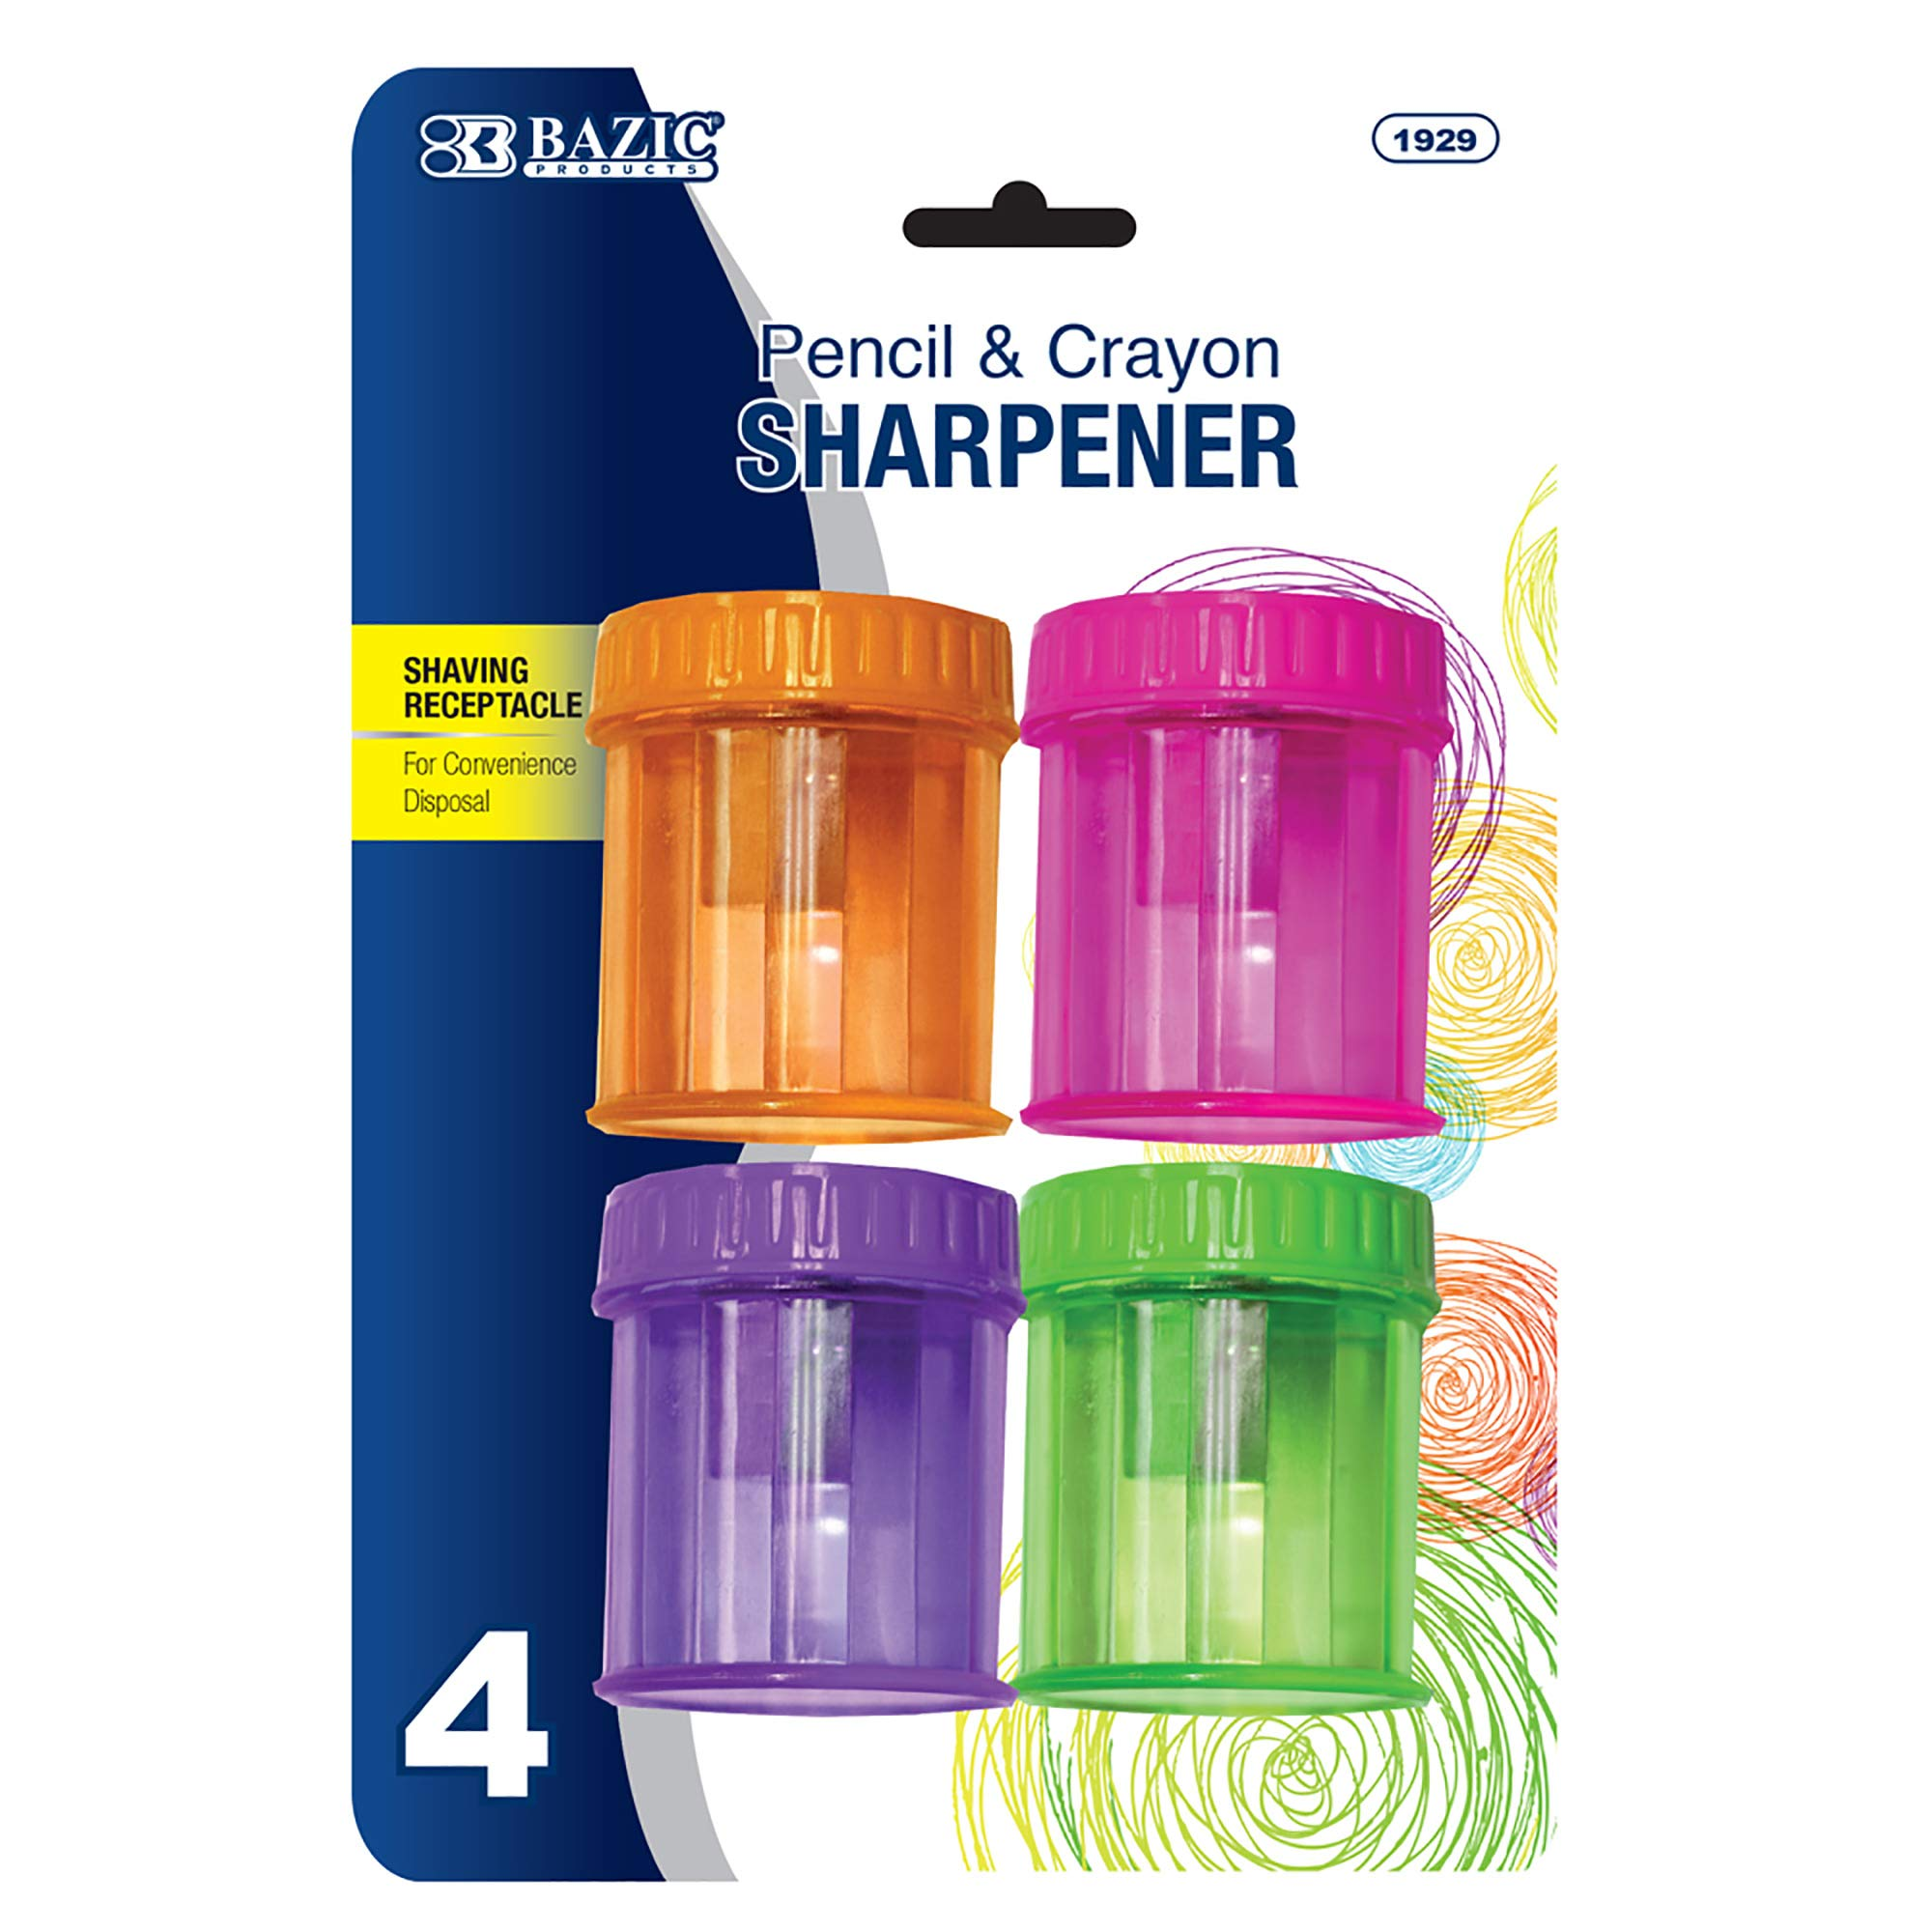 BAZIC Single Hole Blade Pencil Sharpener, Standard Pencil Crayon w/Receptacle, Home Office School Artist Students (4/Pack)